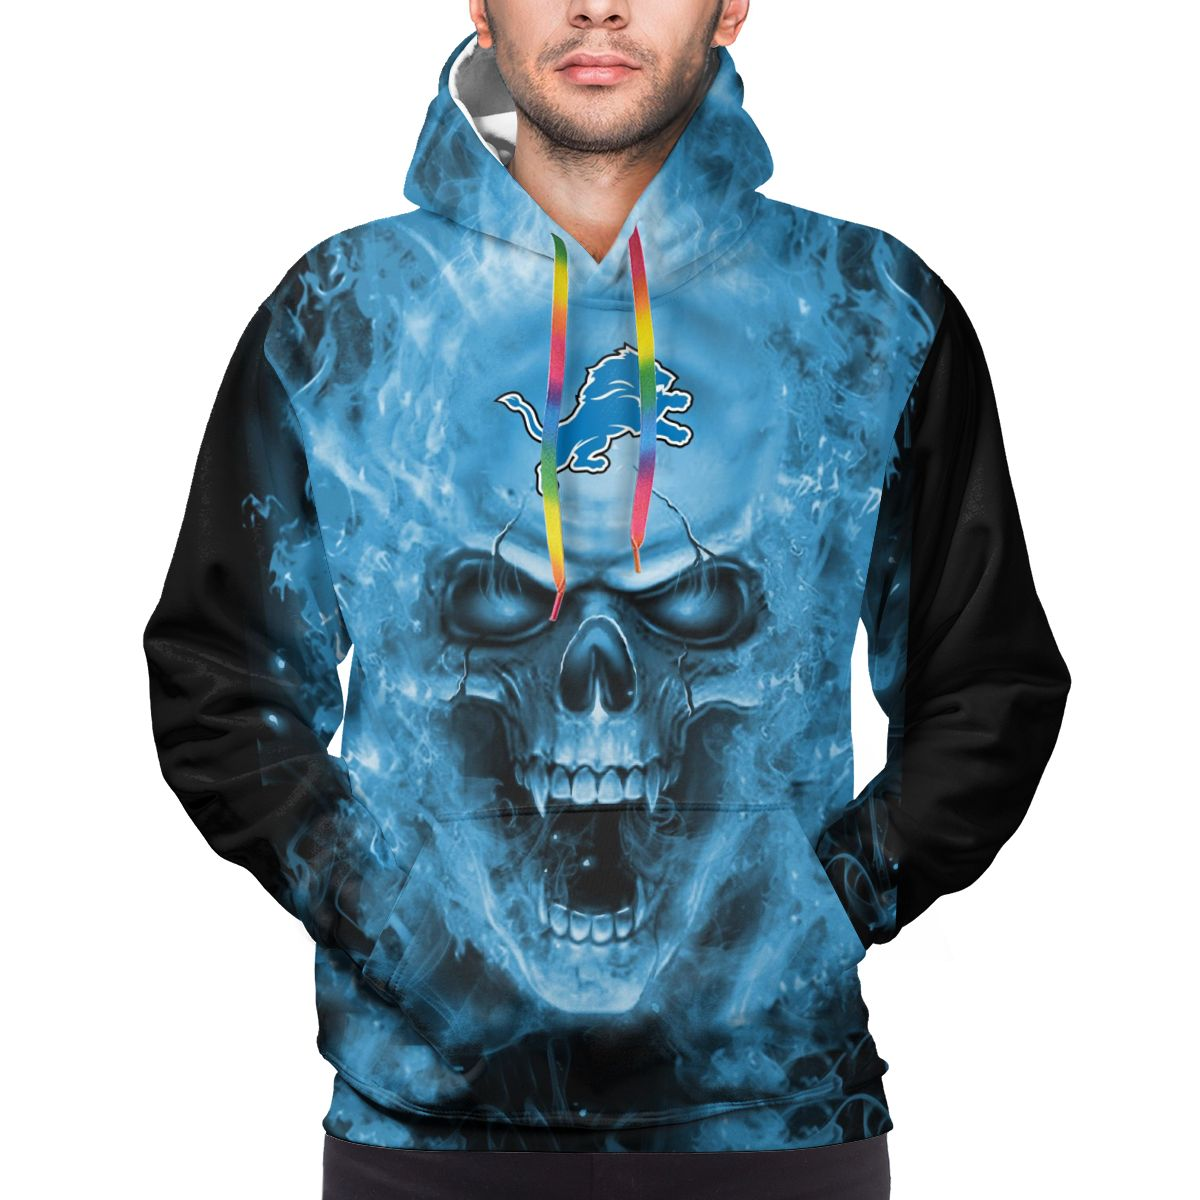 3D Skull Lions Logo Print Hoodies For Men Pullover Sweatshirt